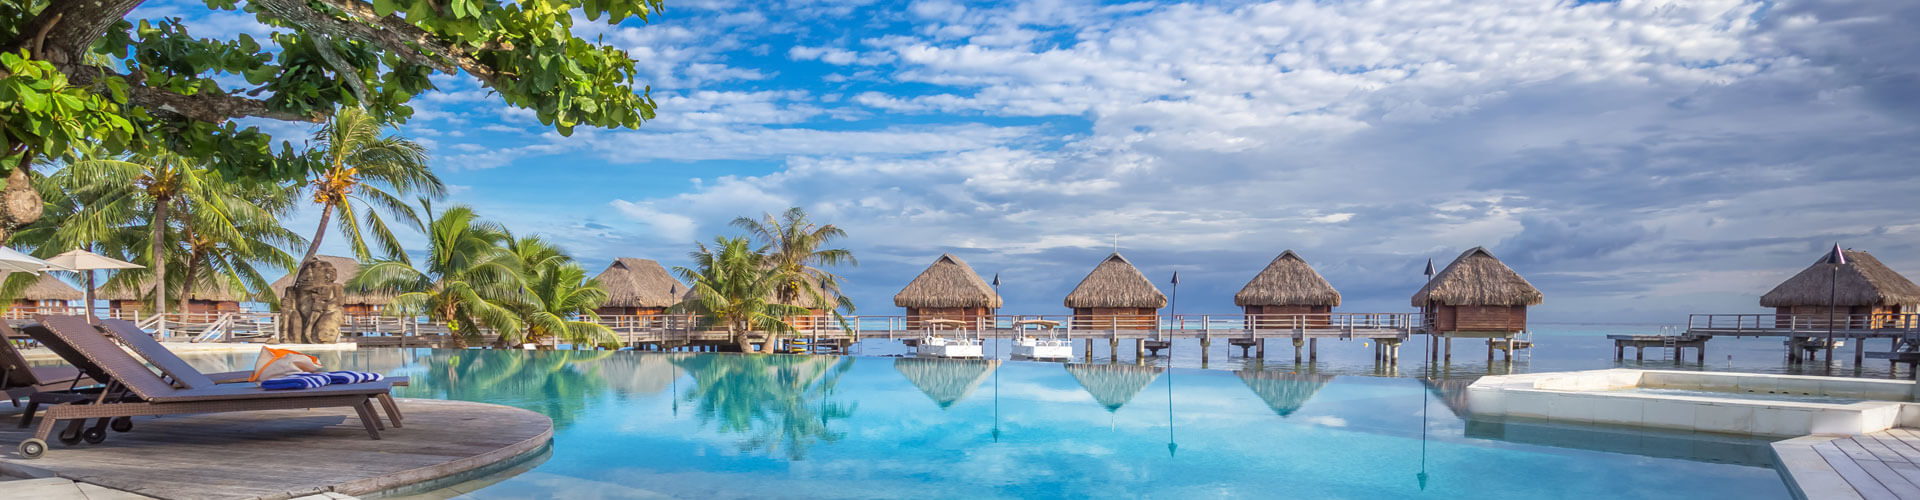 The Manava Beach Resort & Spa Moorea